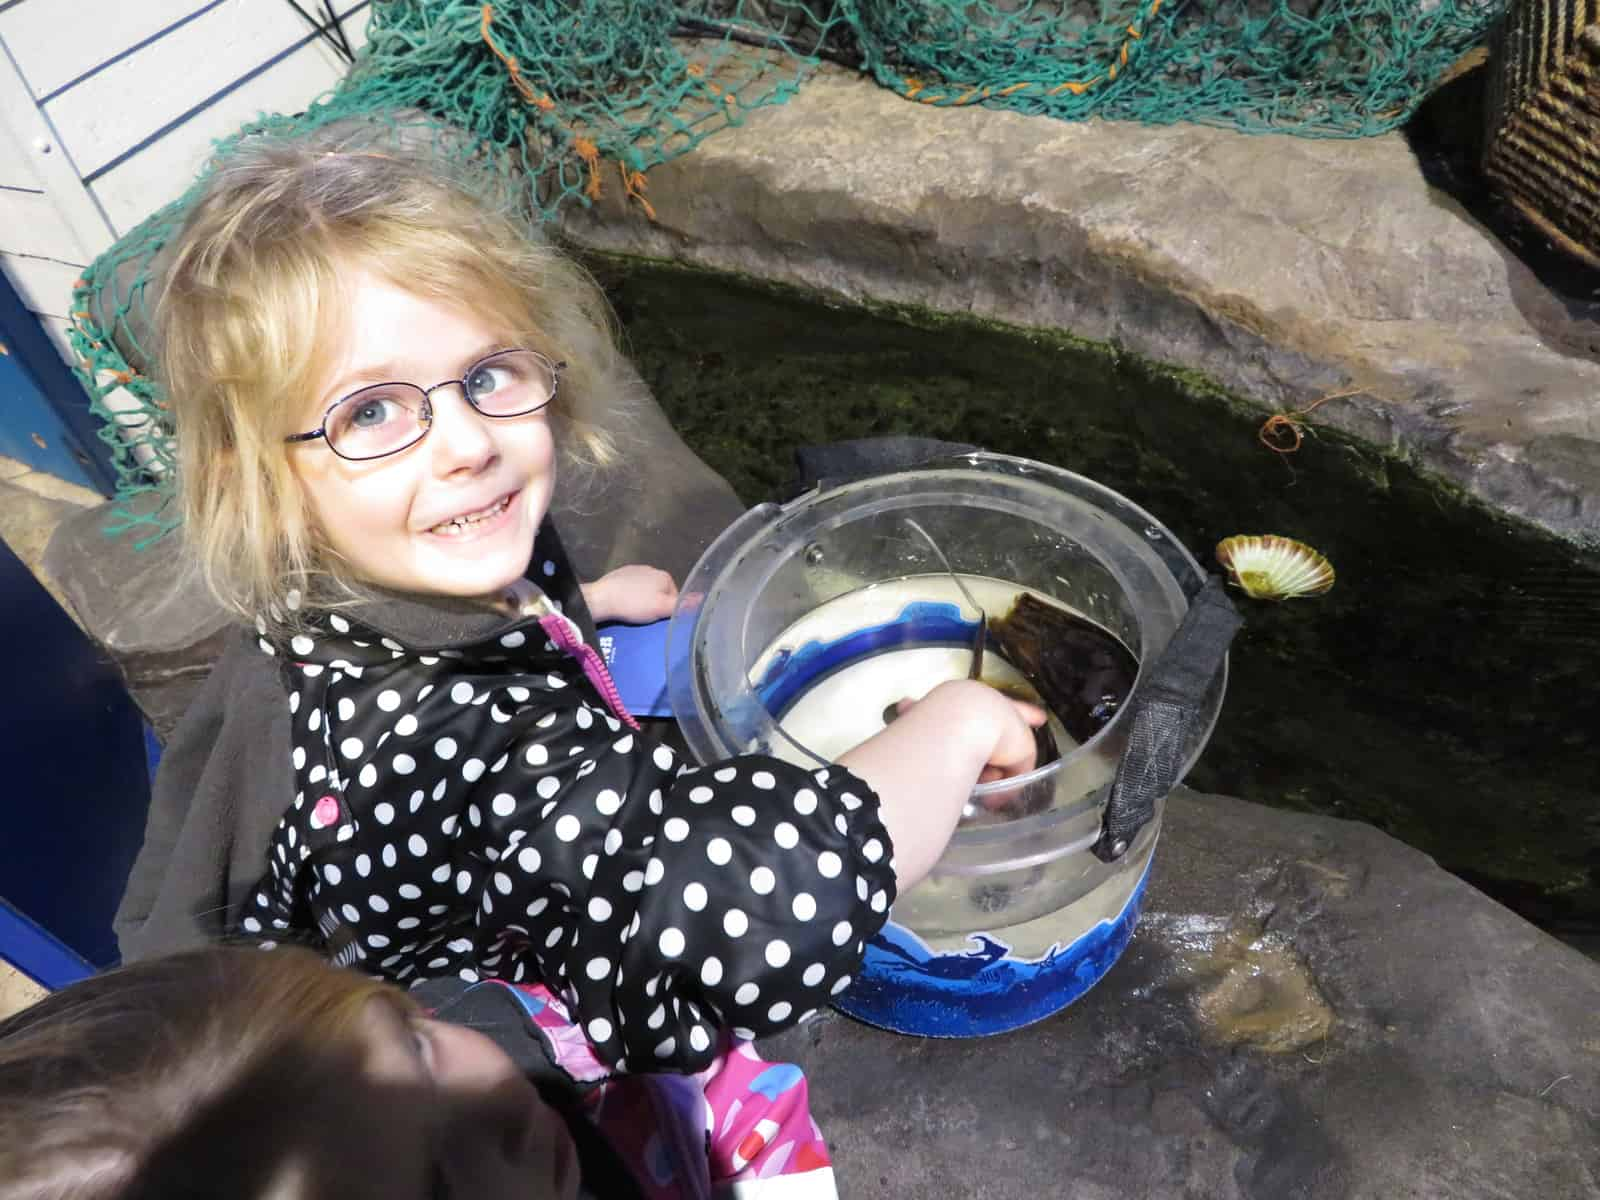 Little girl in black coat with white spots putting her hand into water to touch shark eggs